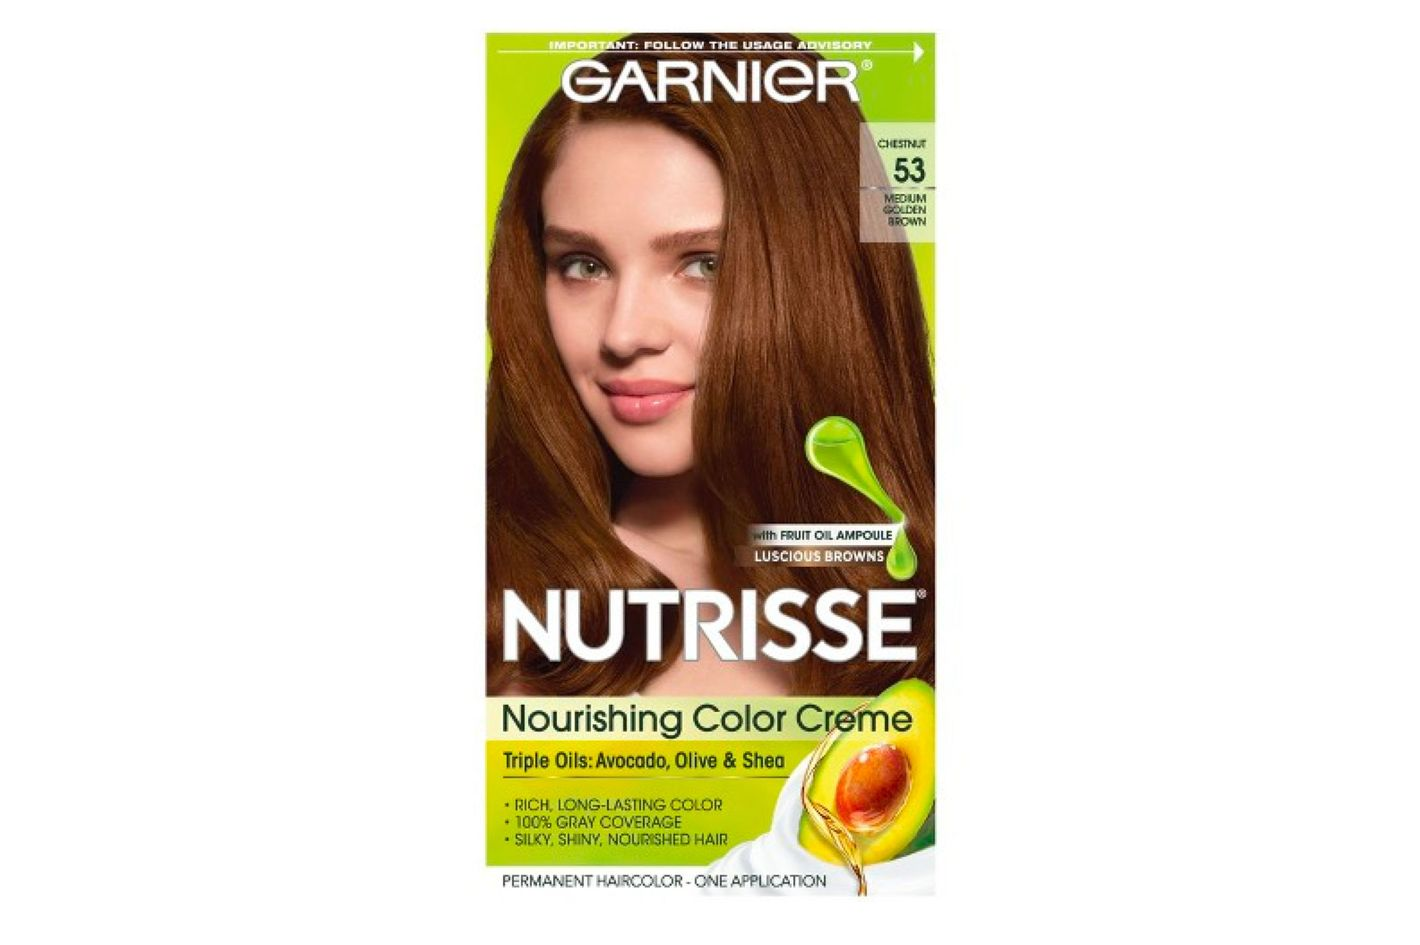 Garnier Nutrisse Nourishing Hair Color Crème